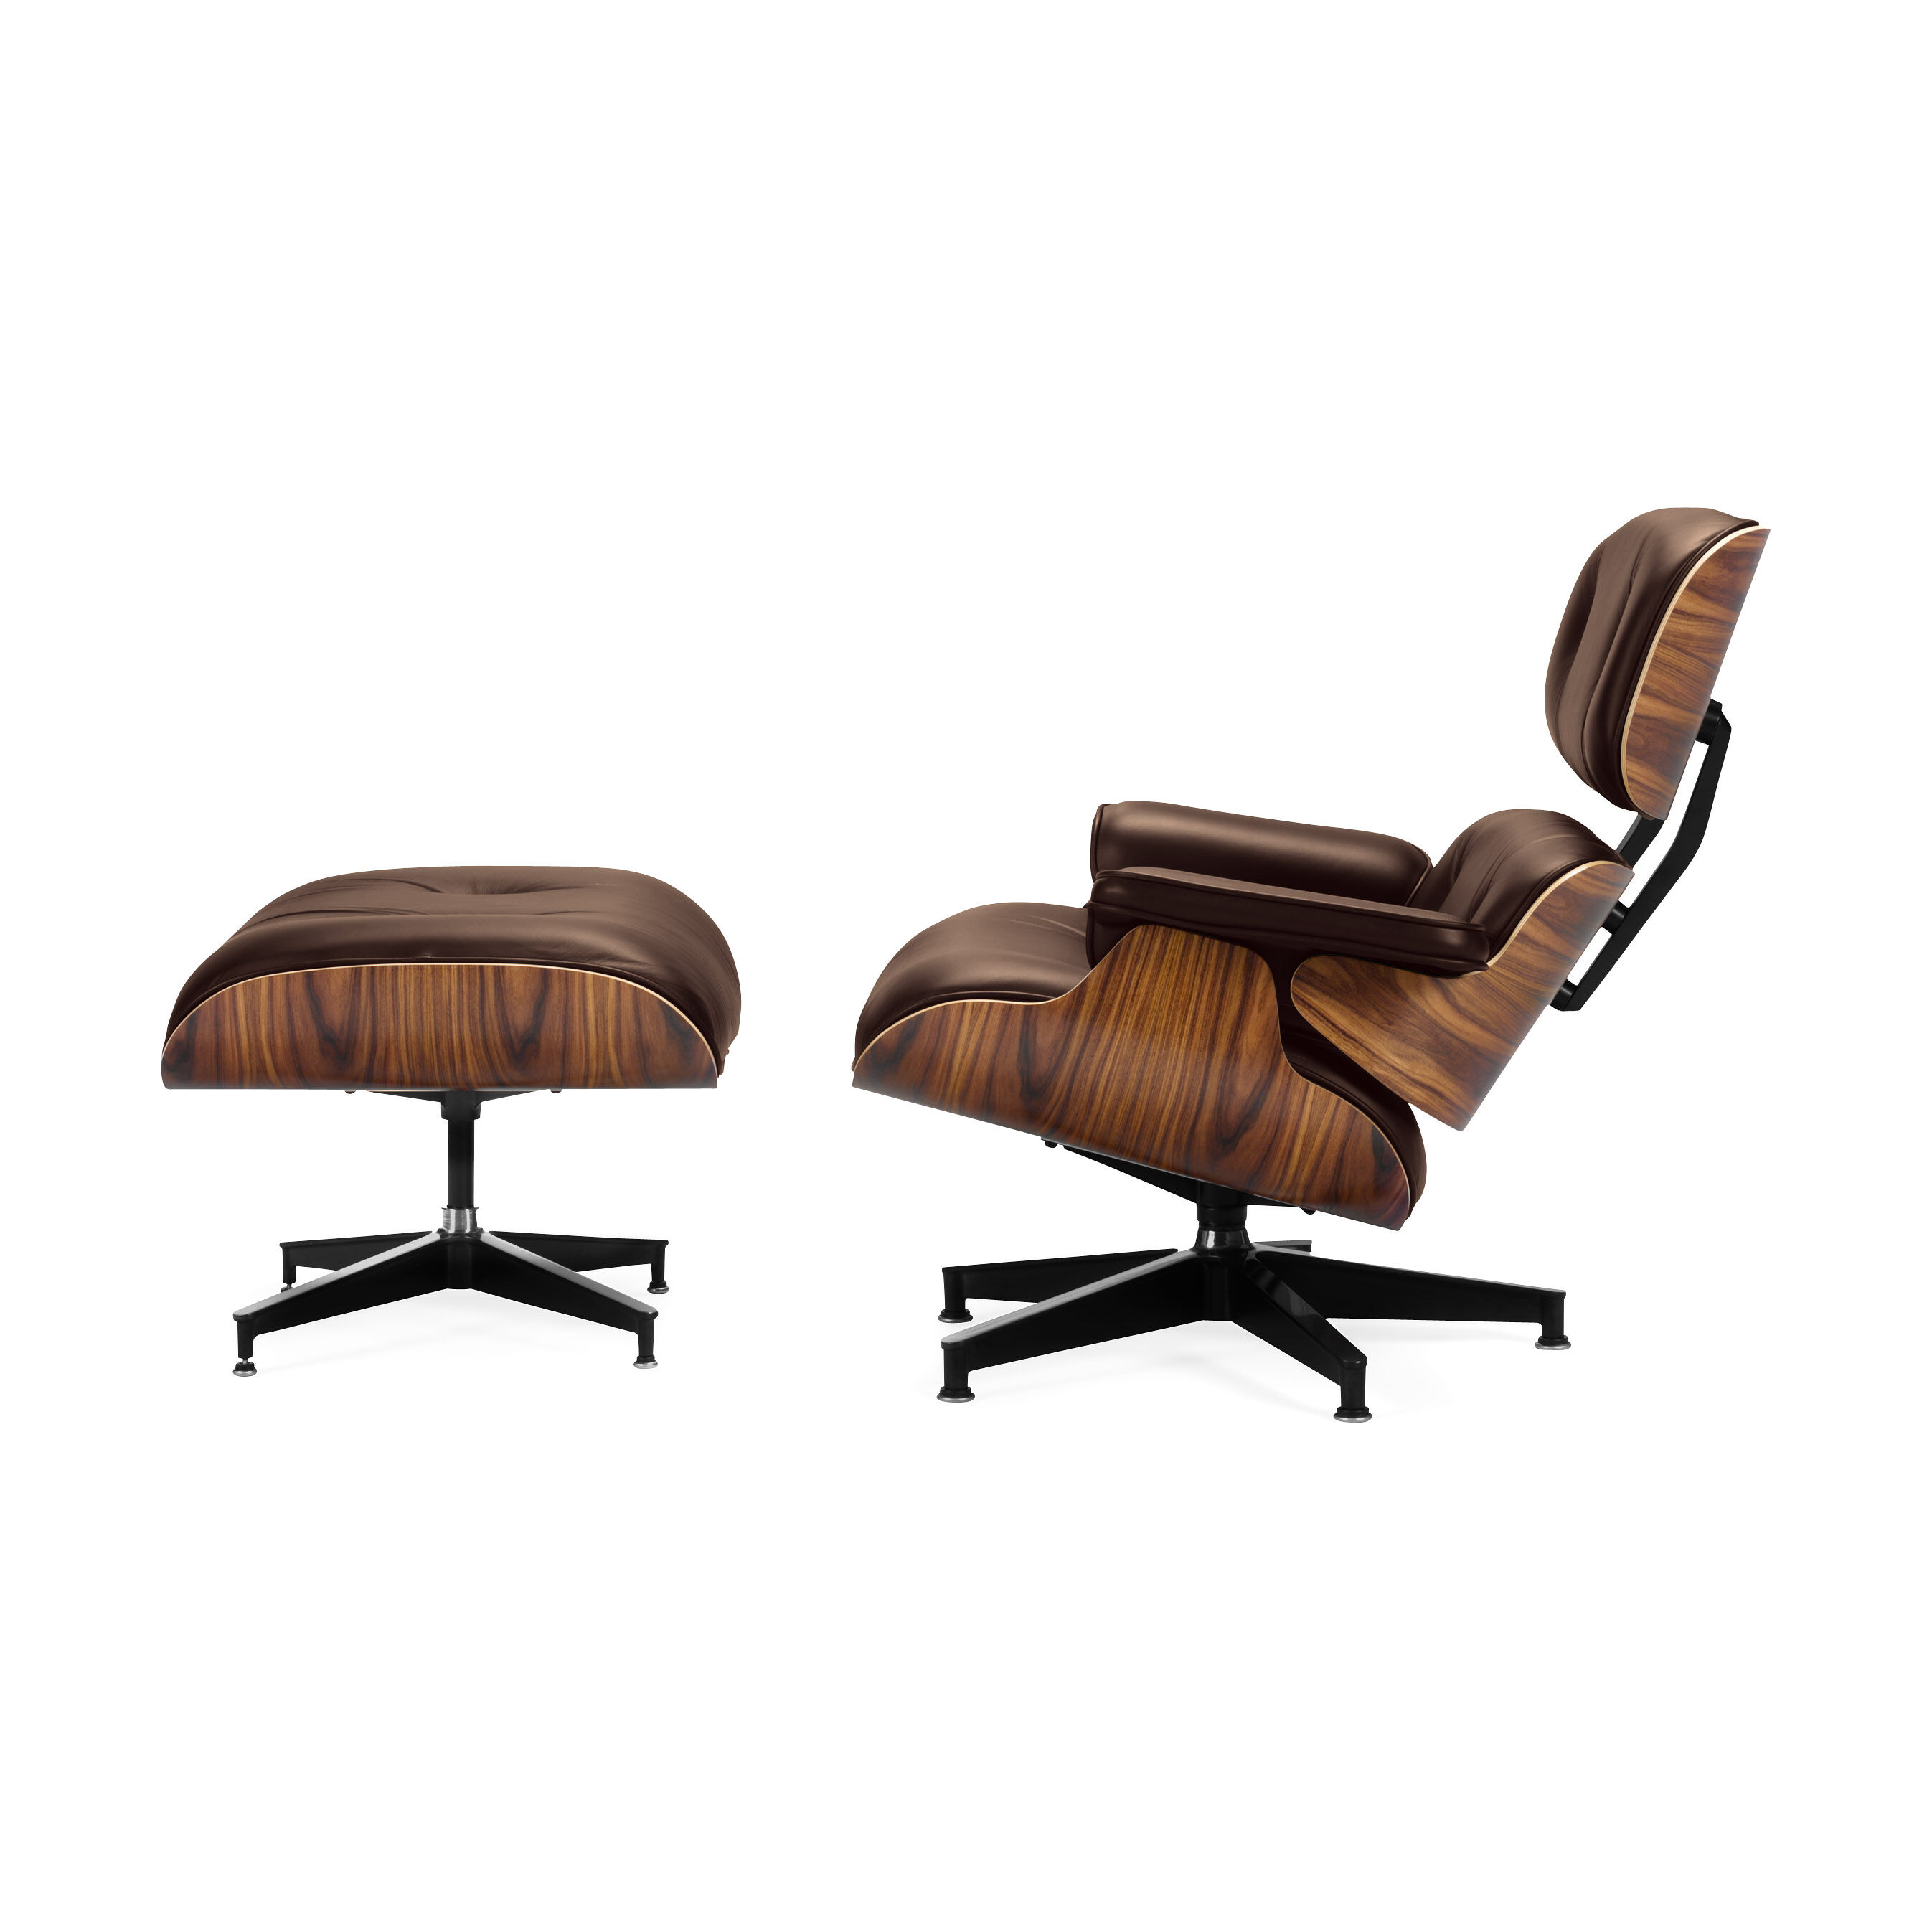 Eames Lounge Chair Brown Leather Walnut Panel MoMA Design Store